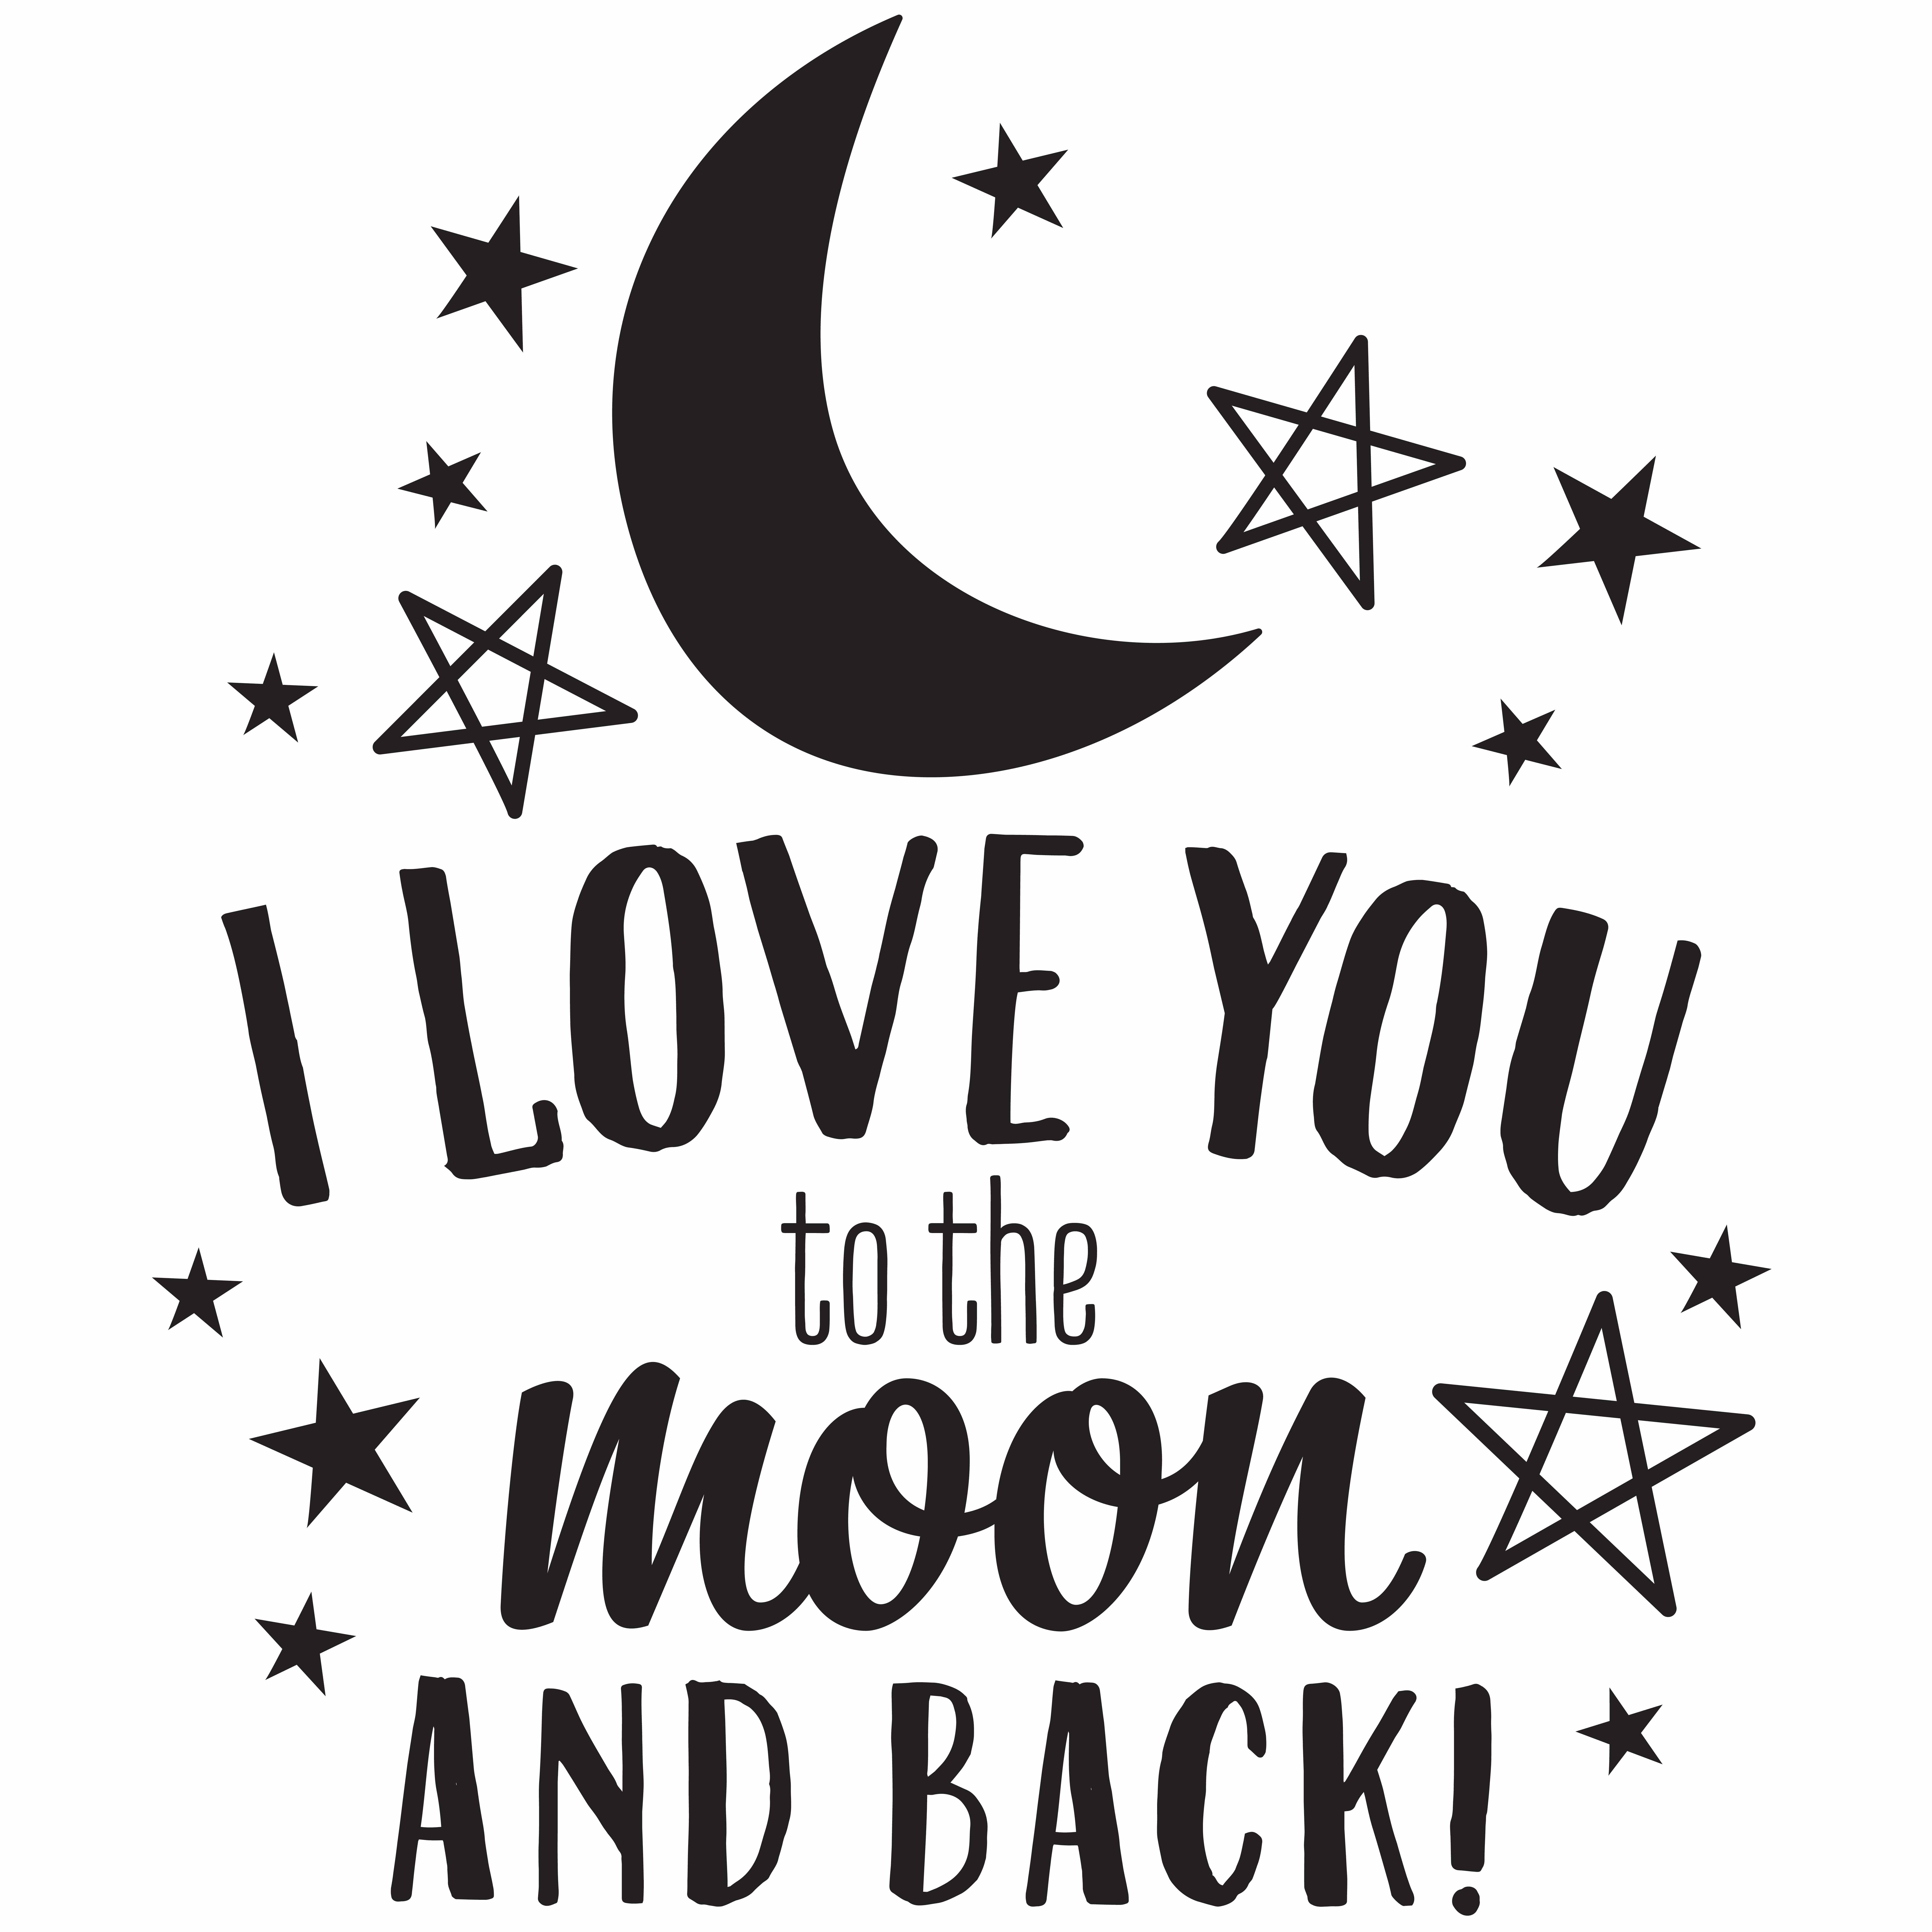 Images of love you to the moon and back